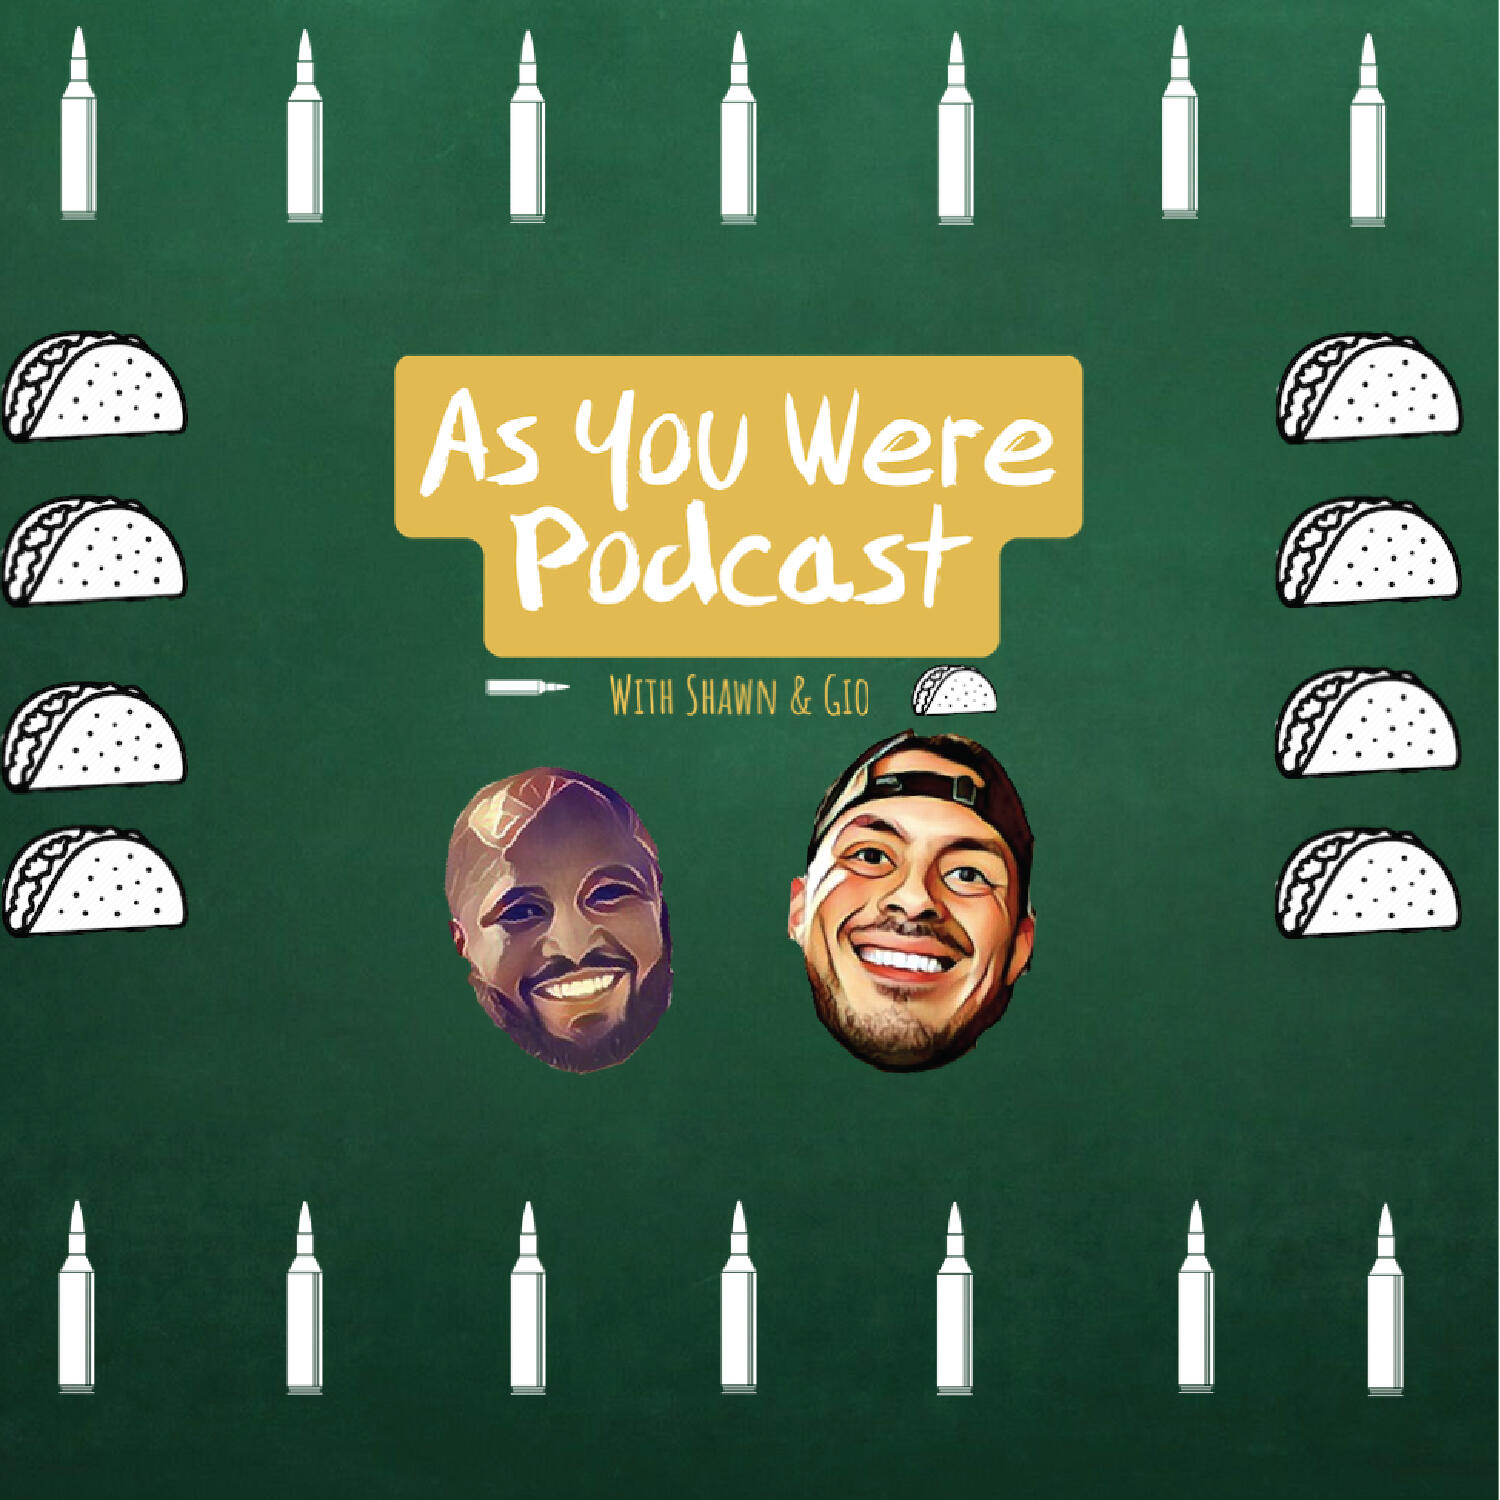 As You Were Podcast